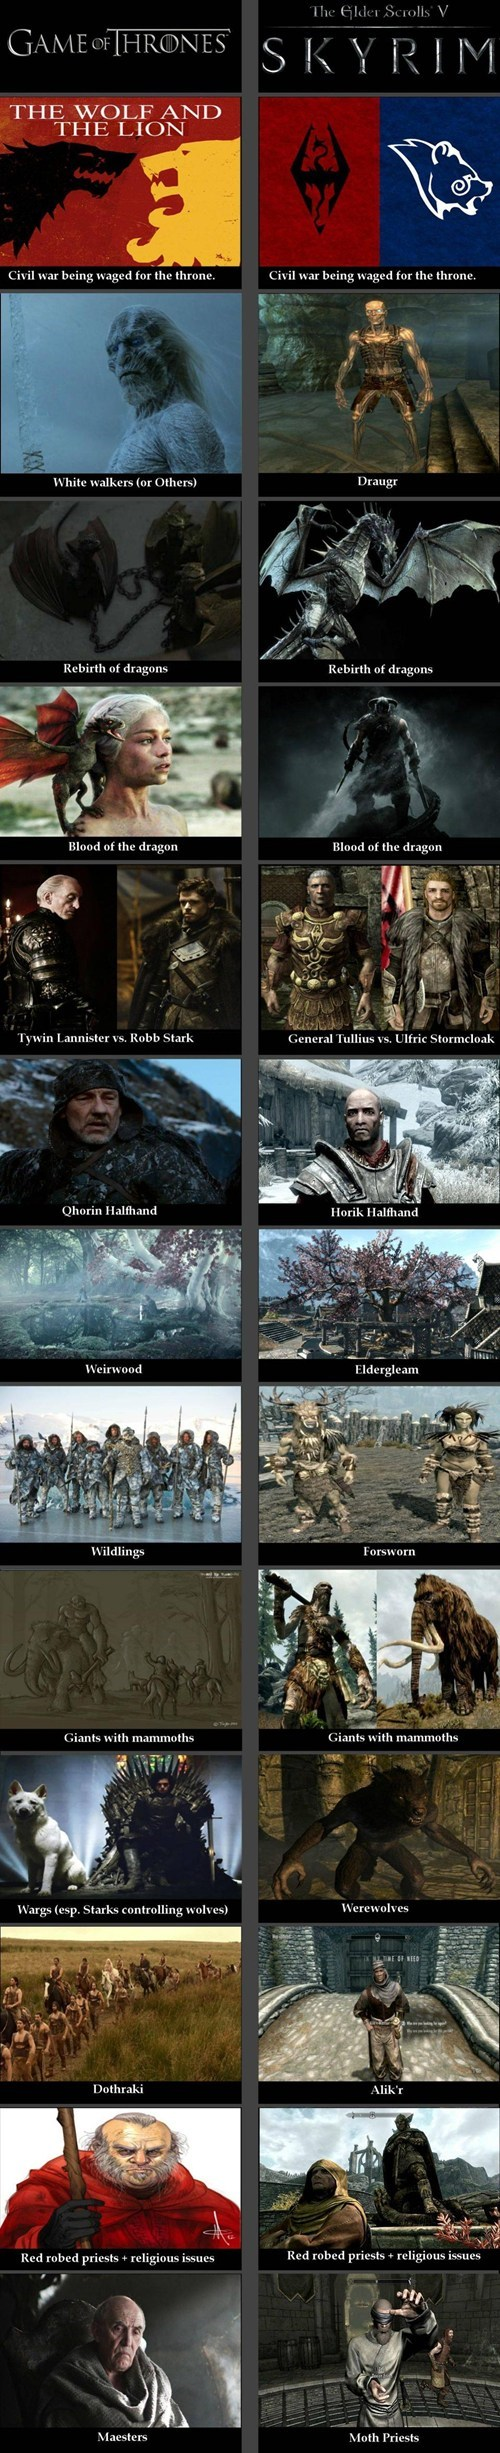 Game of Thrones,comparison,Skyrim